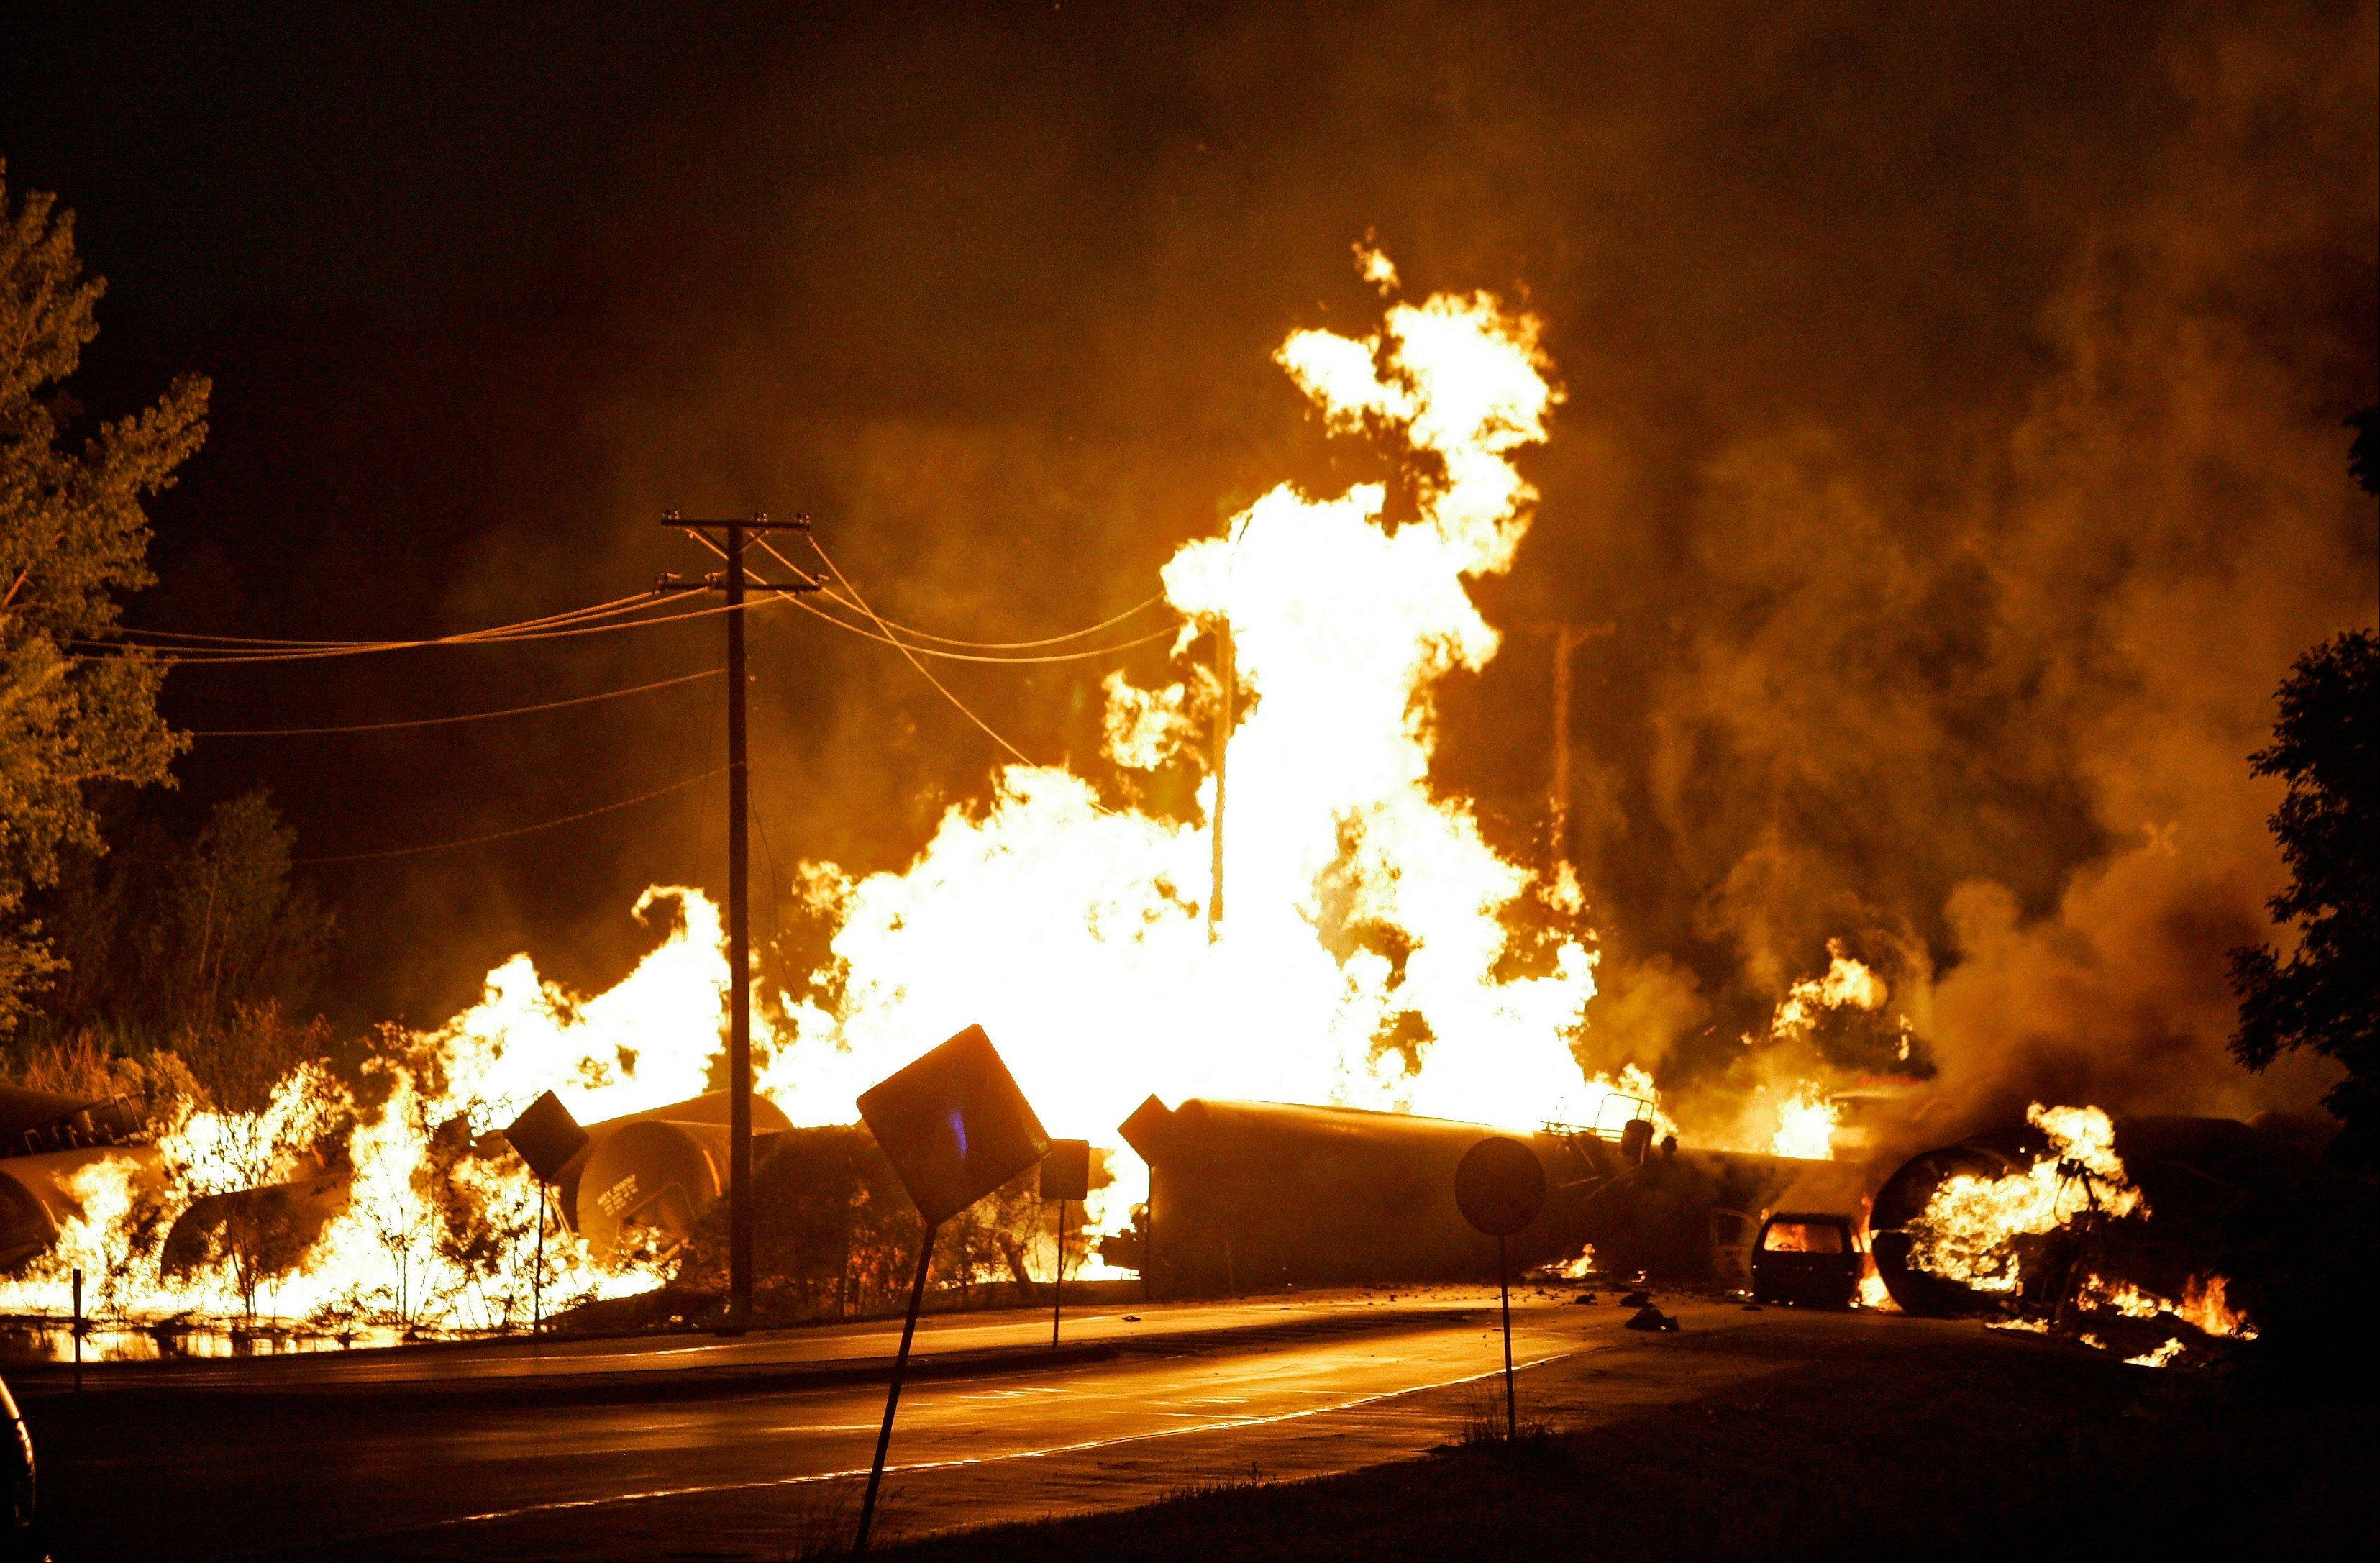 In this June 19, 2009 file photo, a car is seen engulfed in flames from rail cars loaded with ethanol that derailed in Rockford, Ill. A Rockford woman died as she tried to flee the derailment. For two decades, one of the nation's most common types of rail tanker, known as a DOT-111, has been allowed to haul hazardous liquids from coast to coast even though transportation officials were aware of a dangerous design flaw that almost guarantees the car will tear open in an accident.